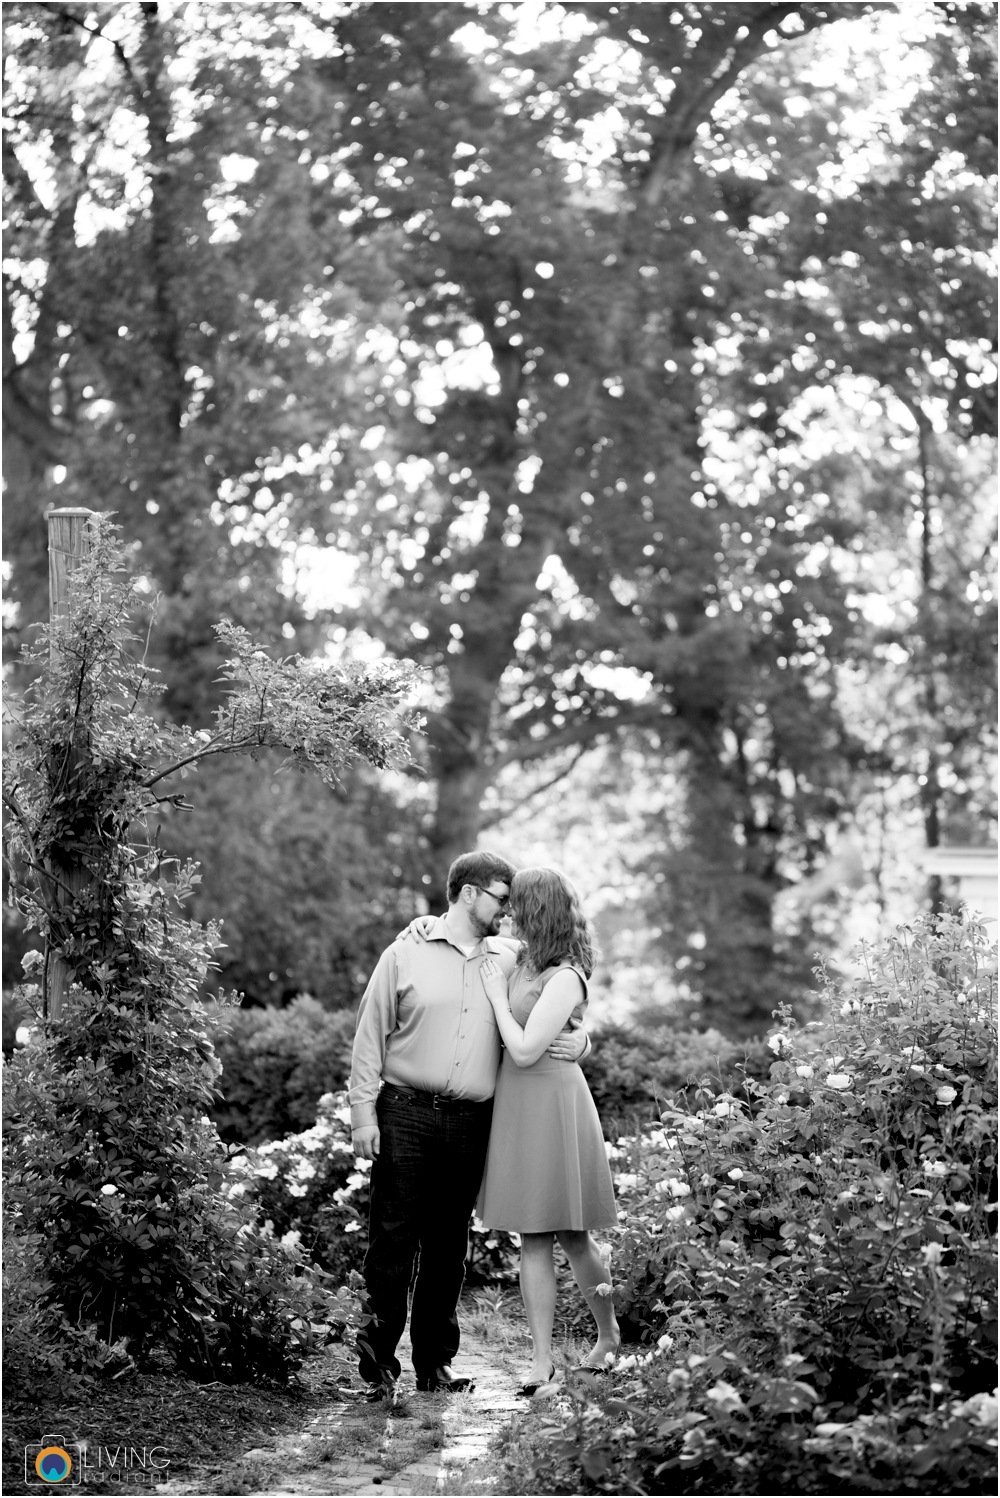 miriam-michael-engaged-clyburn-arboretum-engagement-session-baltimore-outdoor-flowers-living-radiant-photography-maggie-patrick-nolan_0015.jpg